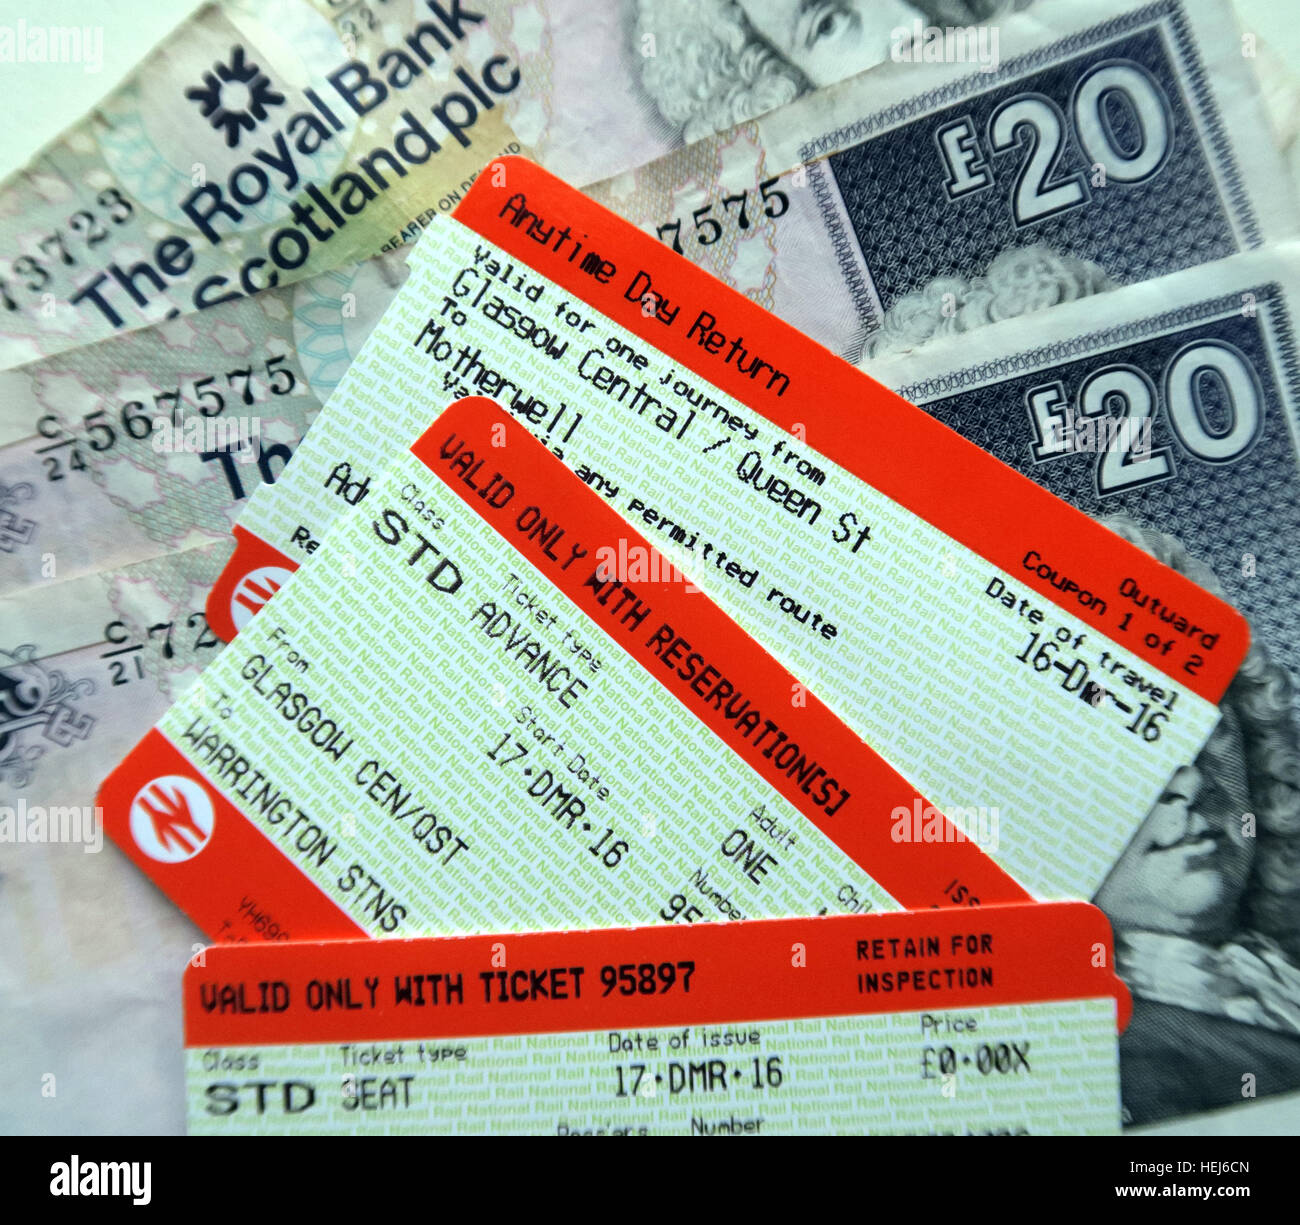 Scotrail passenger tickets and £20 notes,Anytime day return - Stock Image